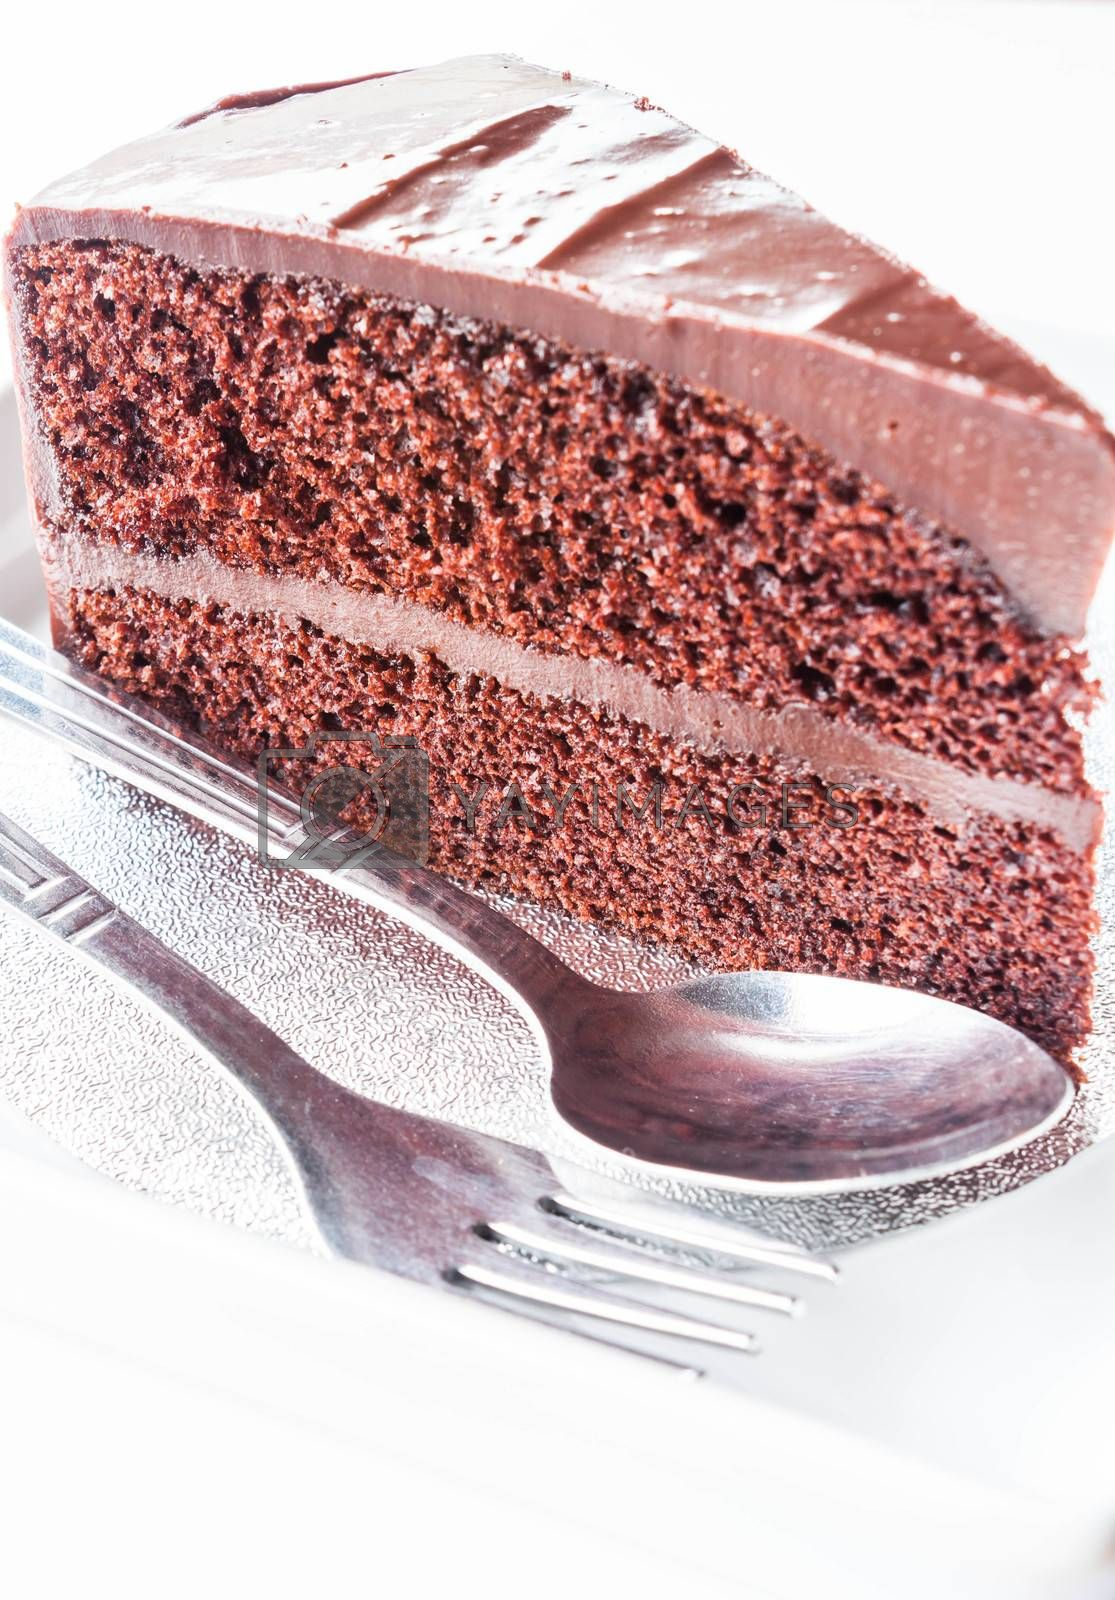 Piece of chocolate cake with spoon and fork